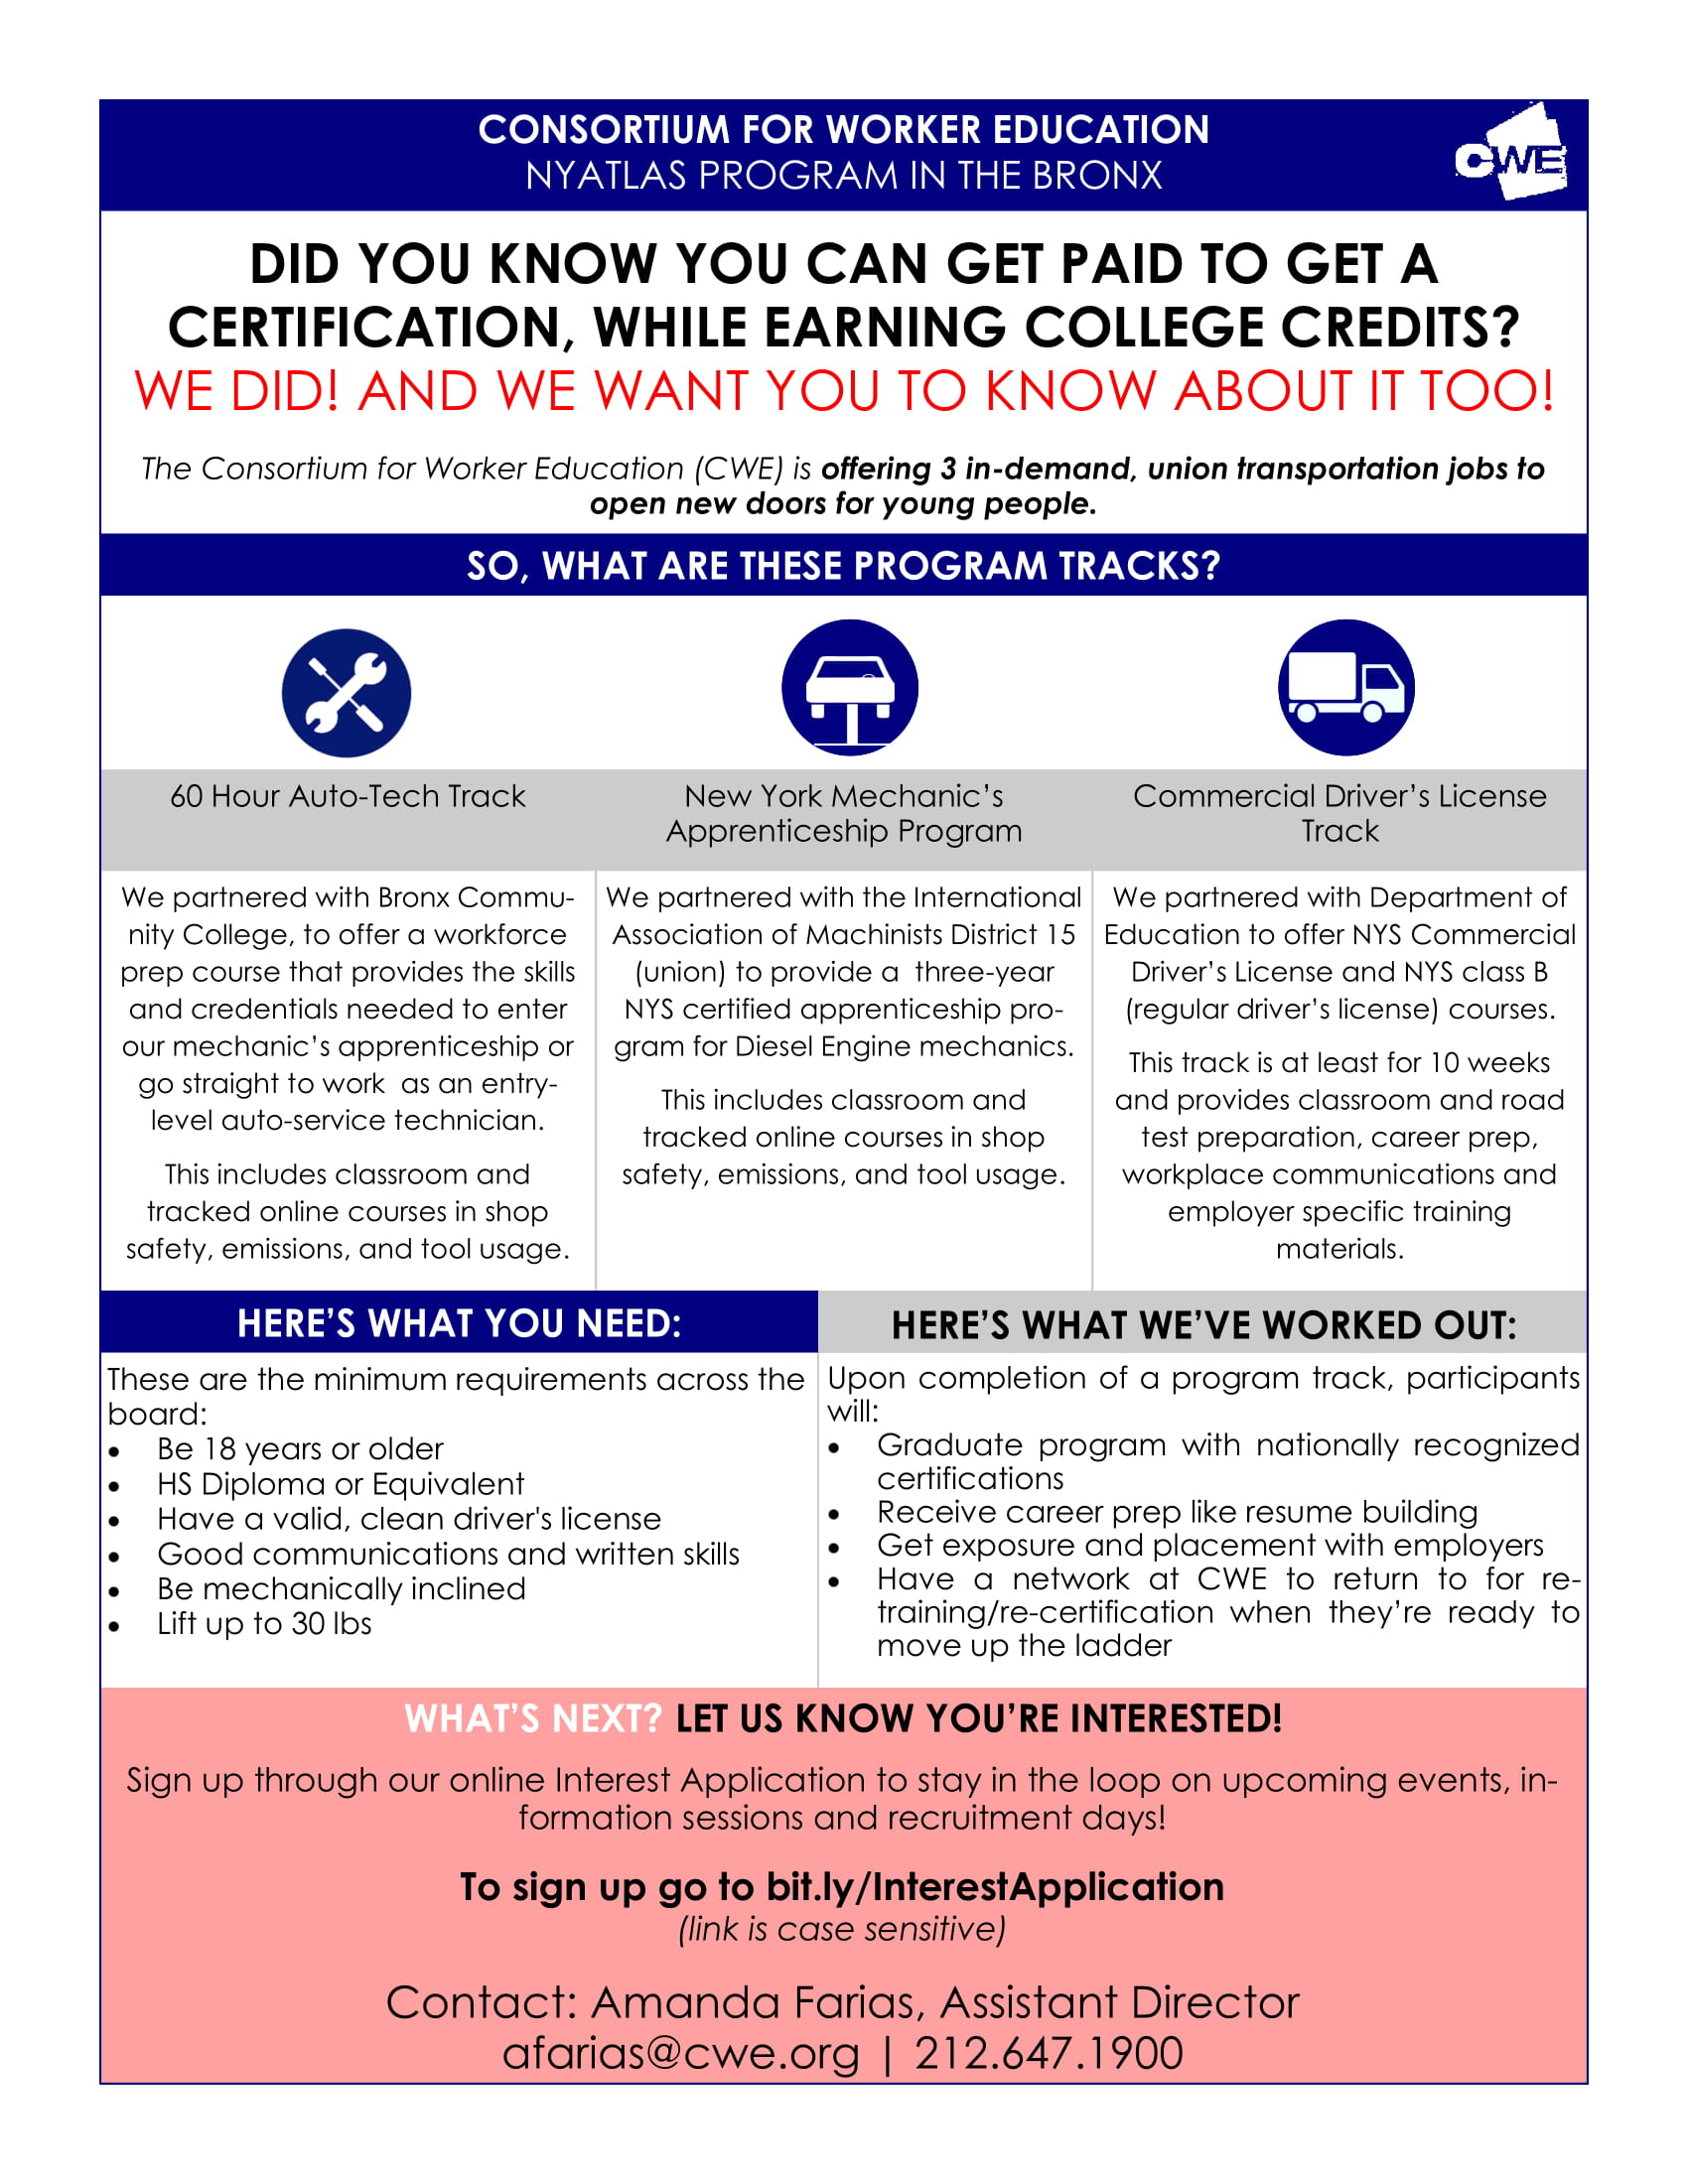 The CWE NYATLAS Initiative: Paid Job Training Opportunity in